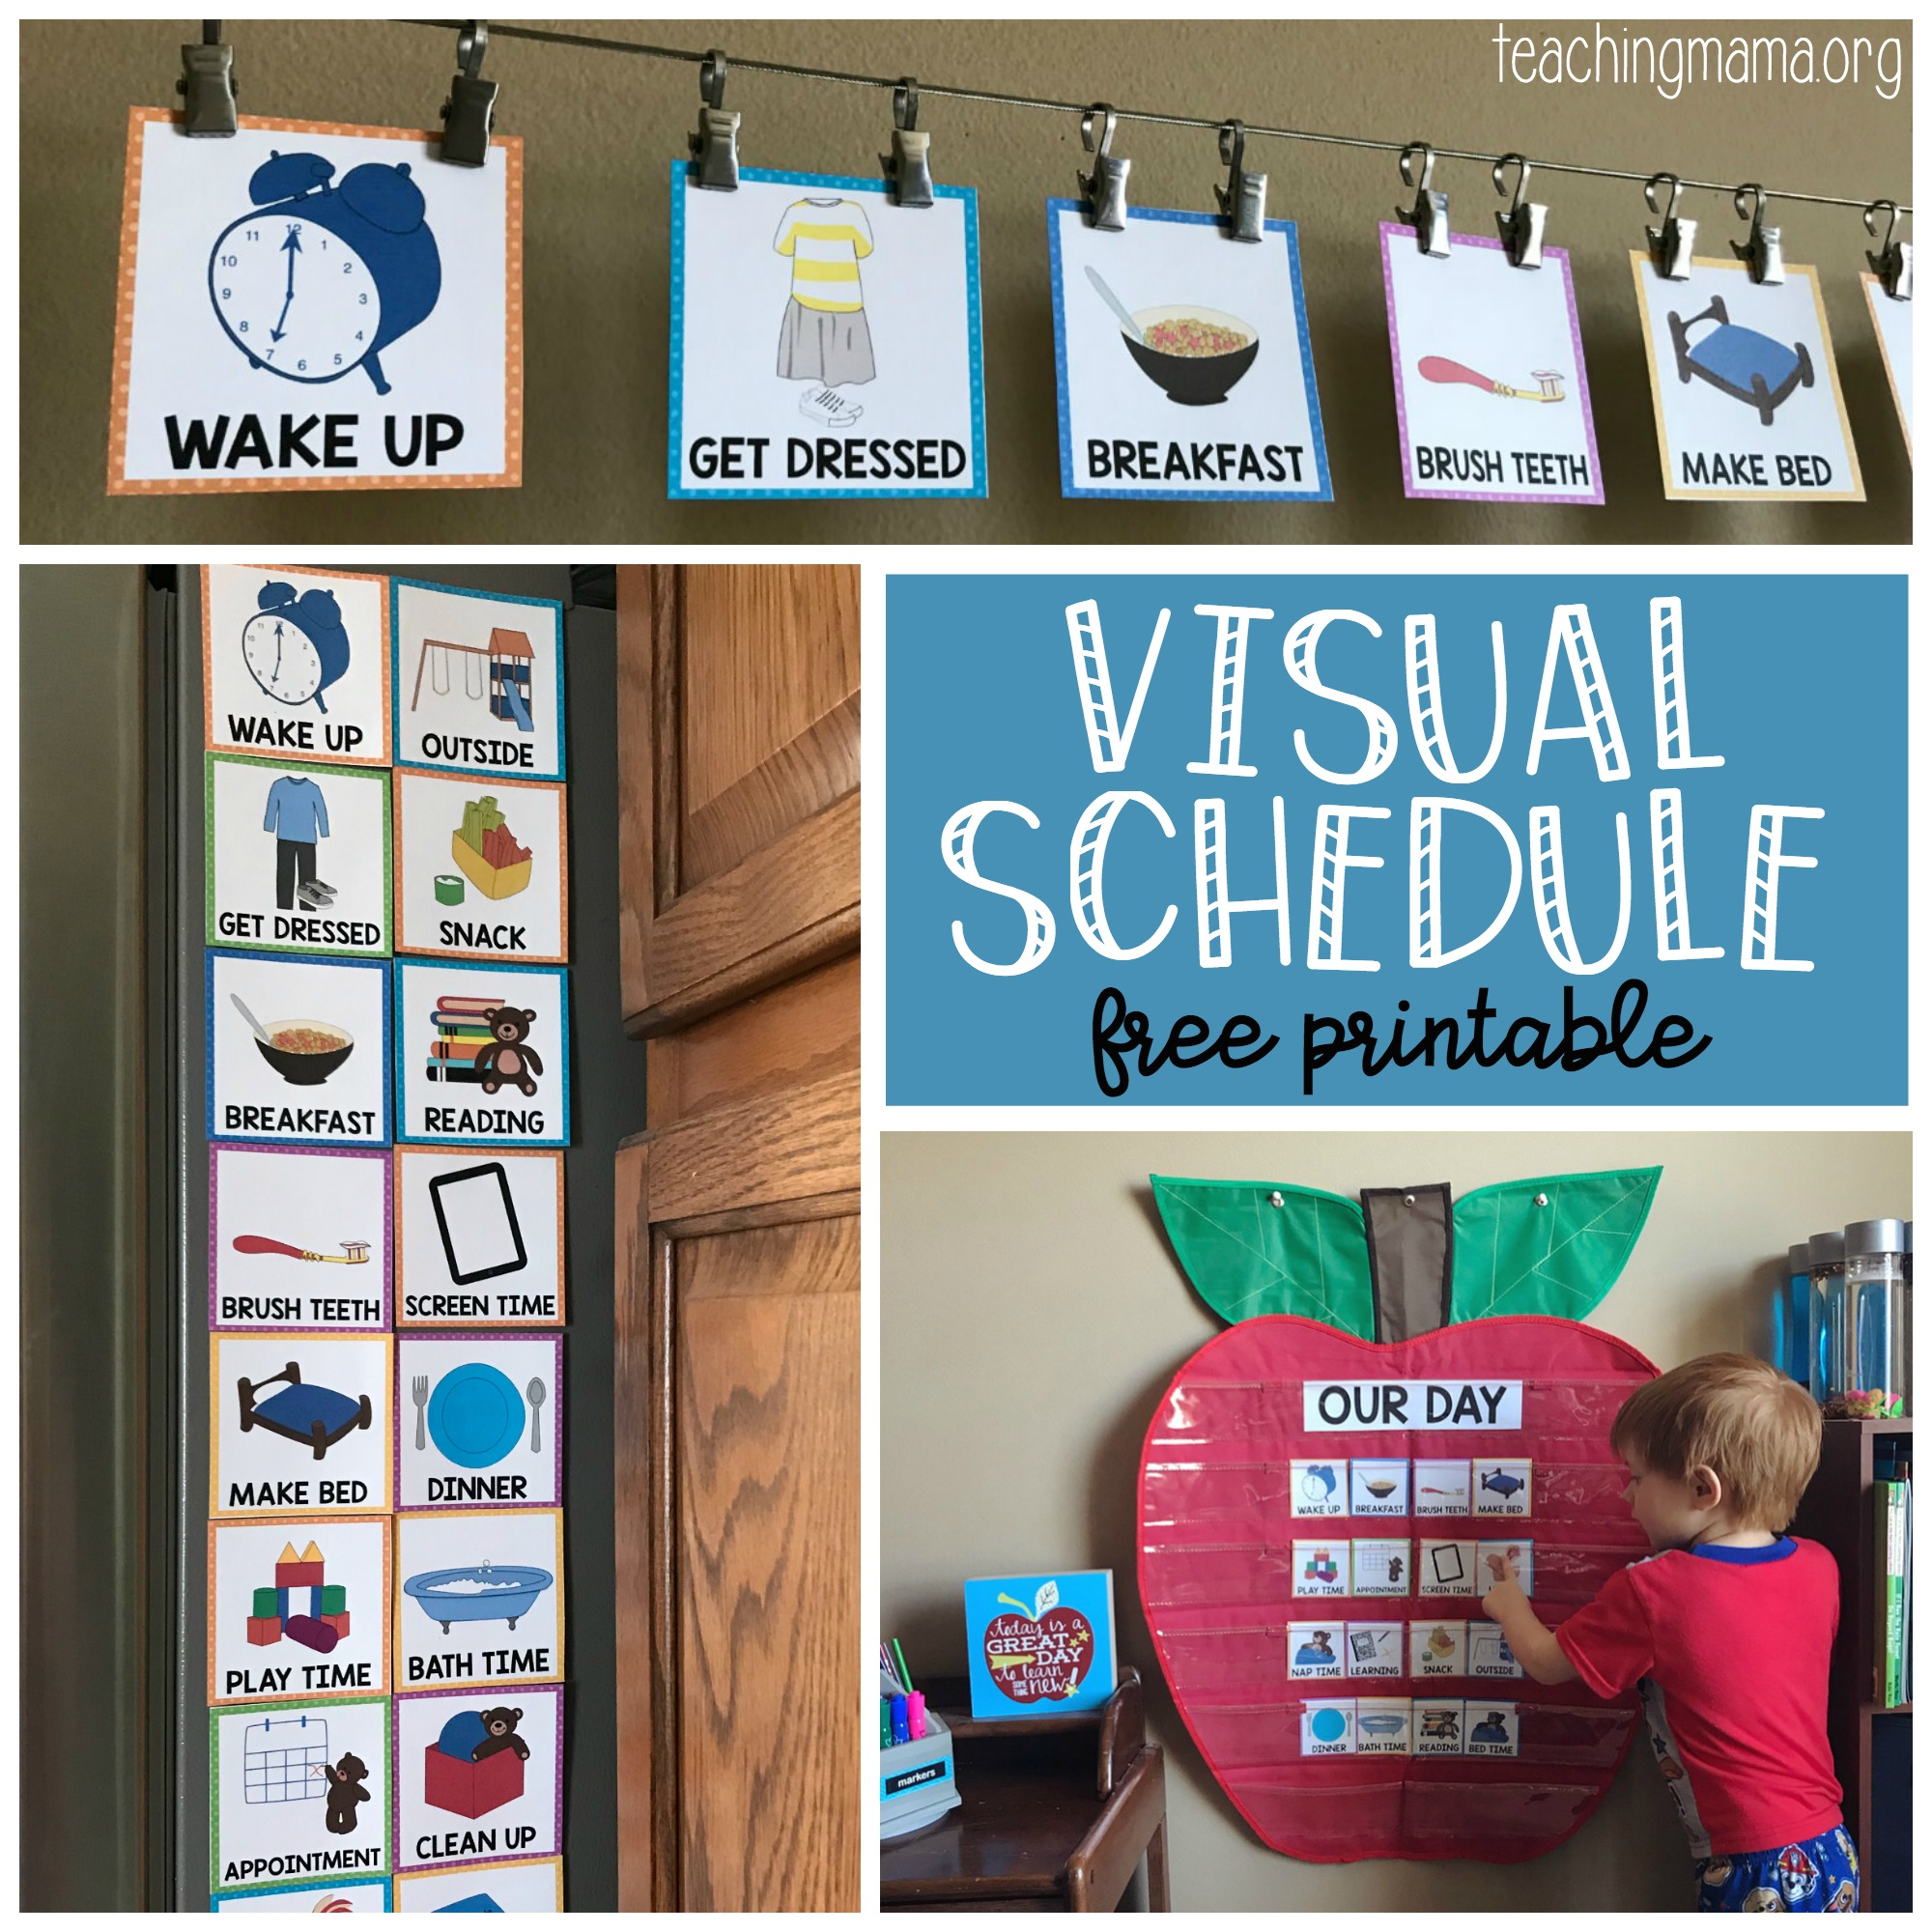 photograph regarding Visual Schedule Printable referred to as Visible Routine for Babies